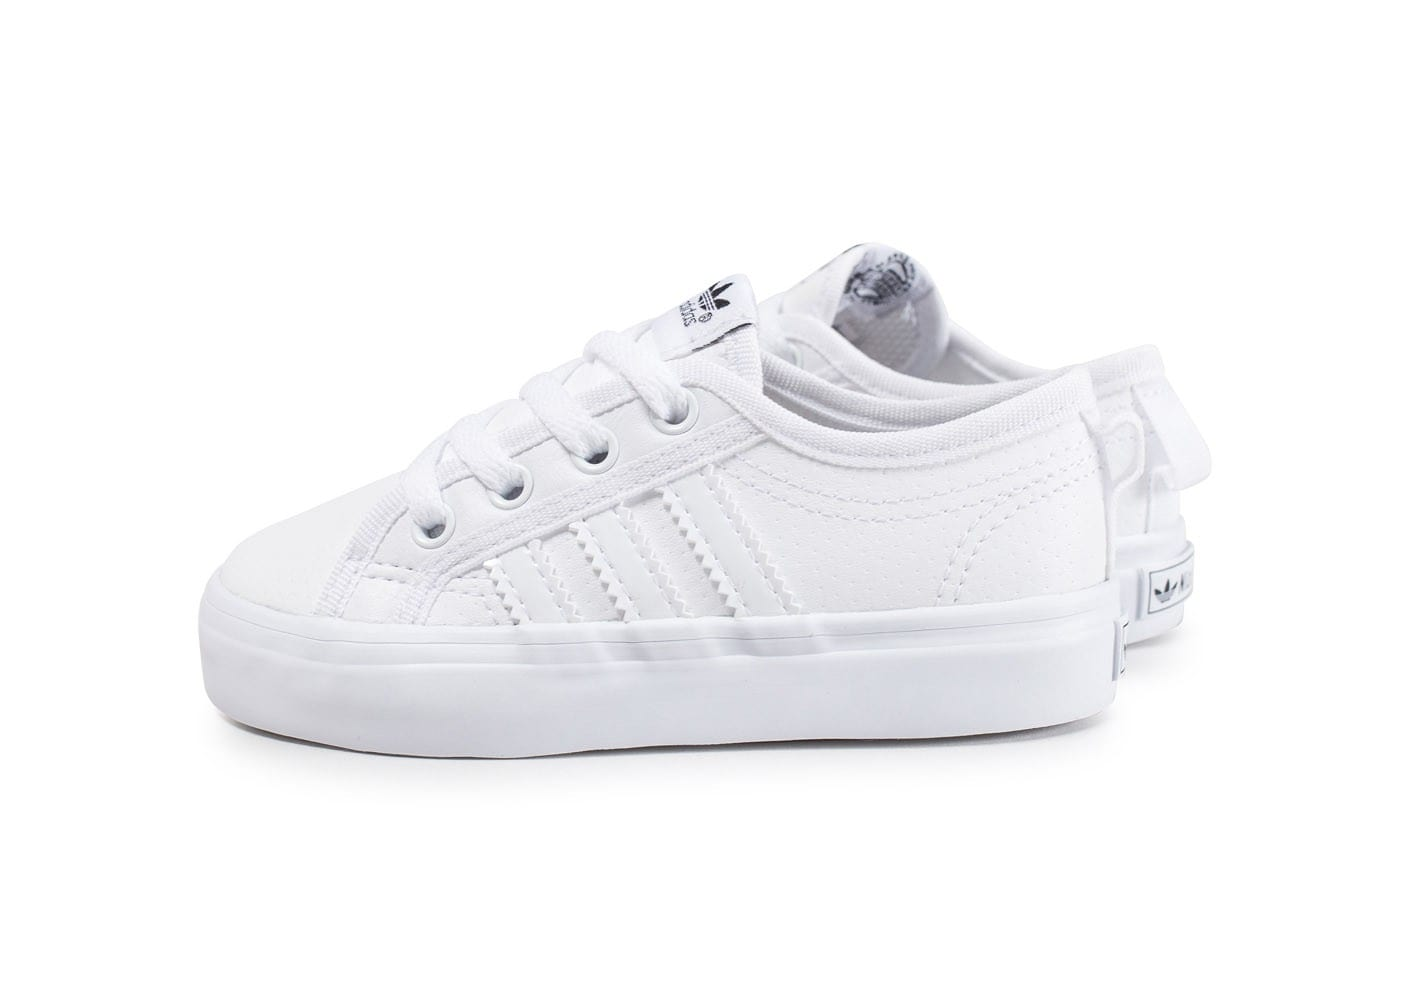 Low Blanche Nizza Adidas Chaussures Chausport Bébé W2eHYED9I